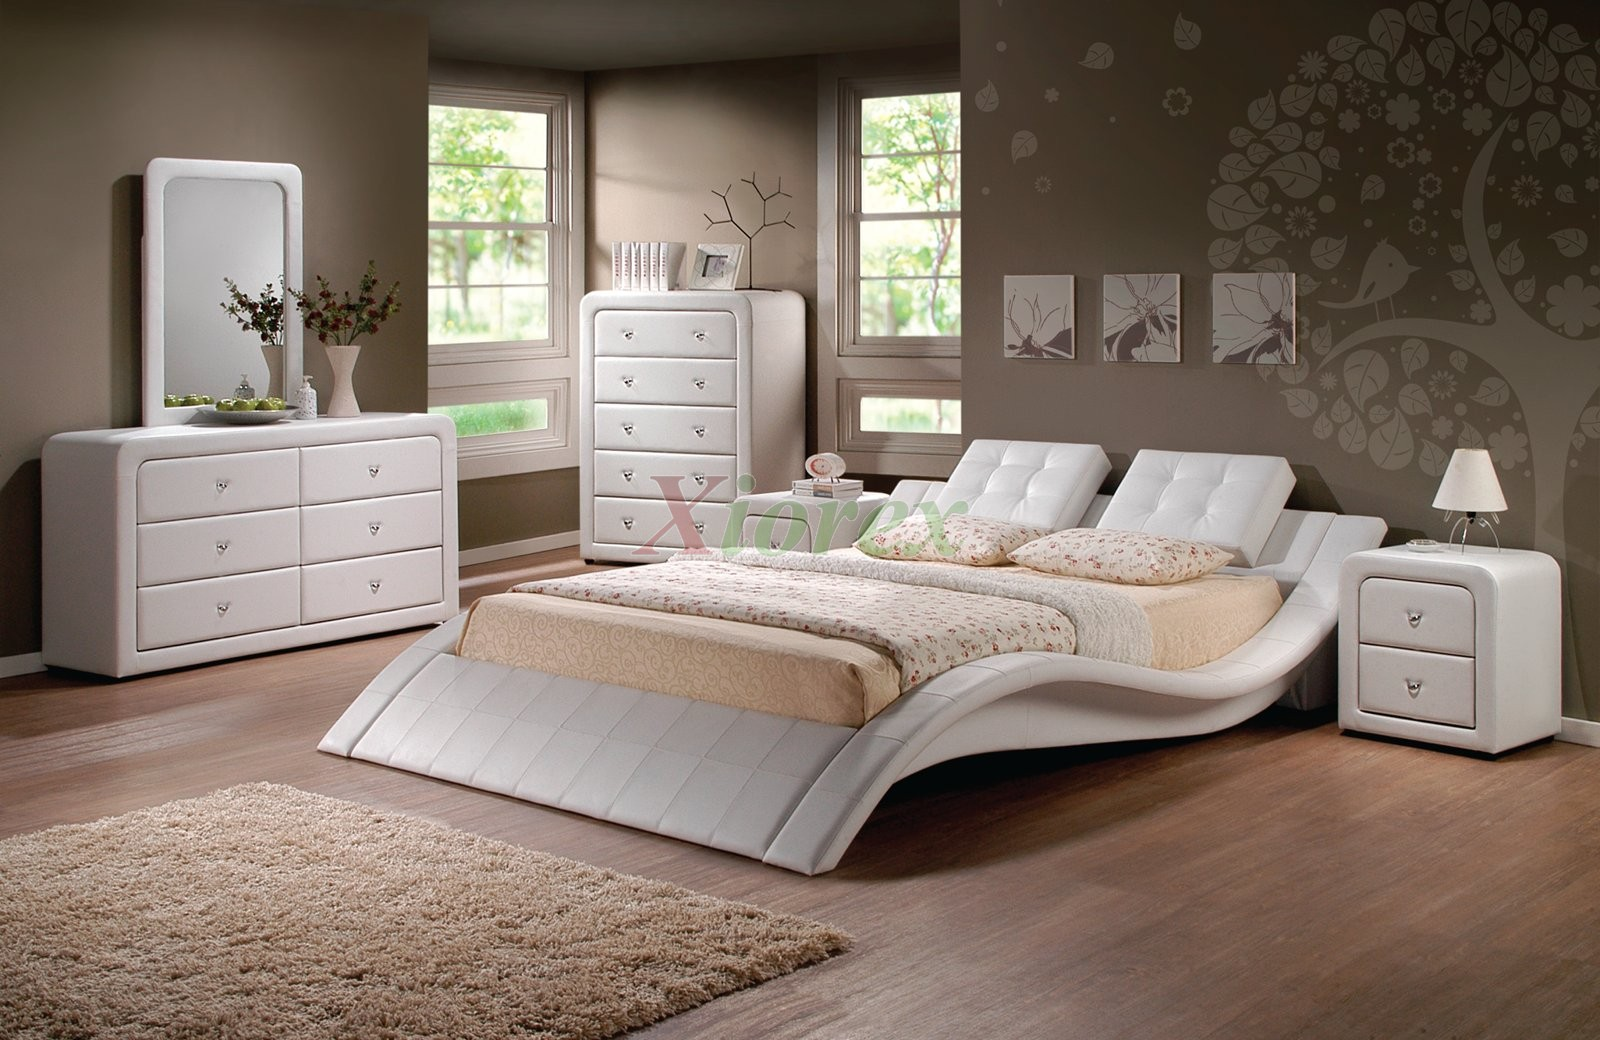 modern upholstered platform bedroom furniture set 152 xiorex 12529 | upholstered platform bedroom furniture set tdc0000152